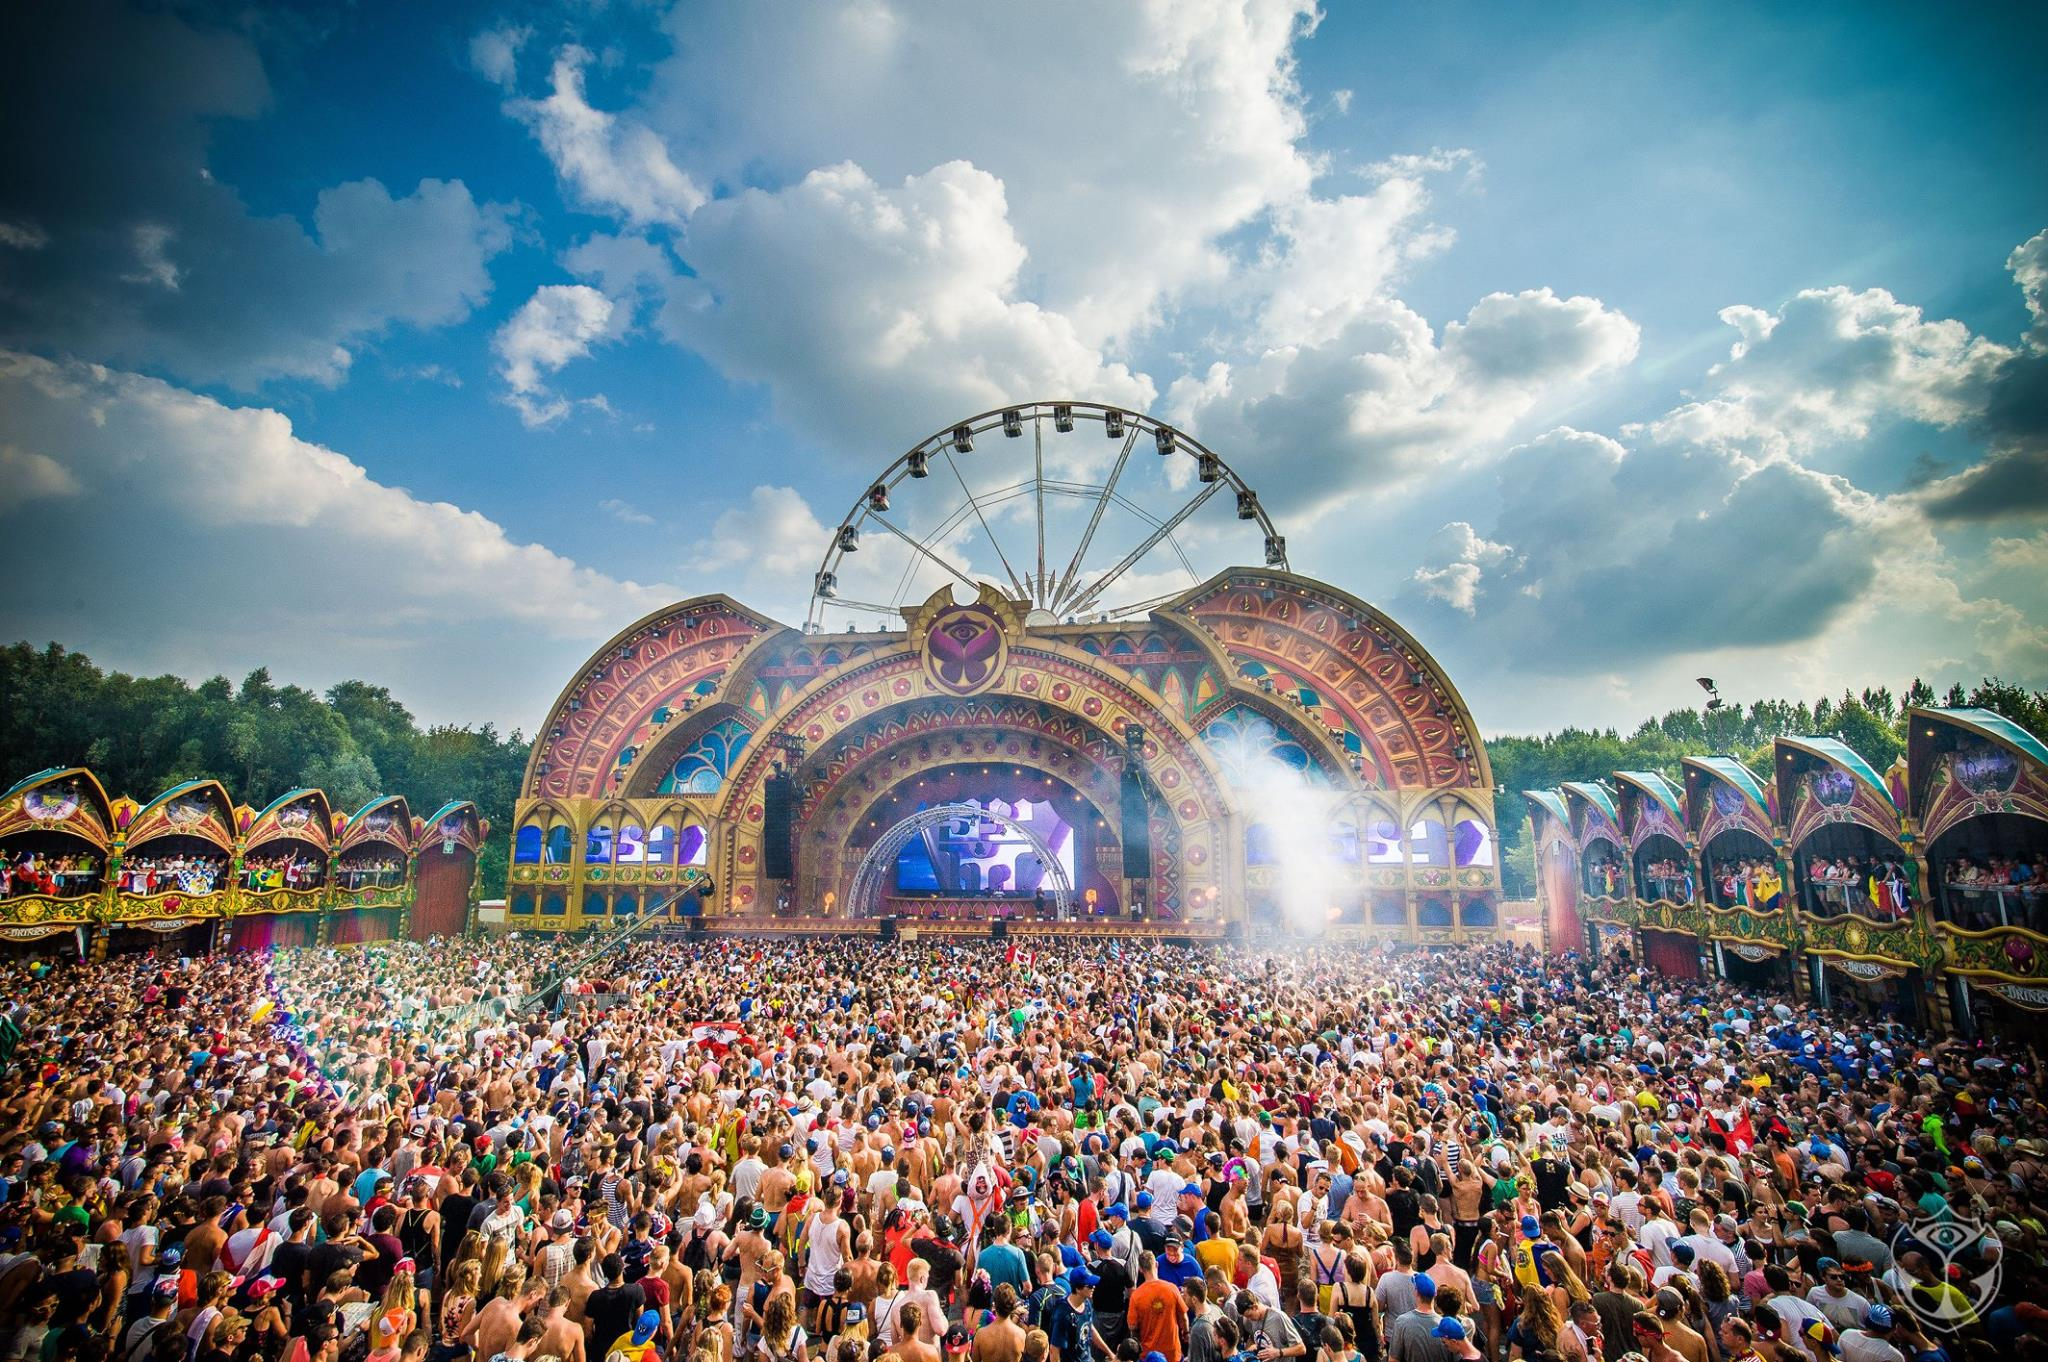 Record breaking wristbands are sold at Tomorrowland each year